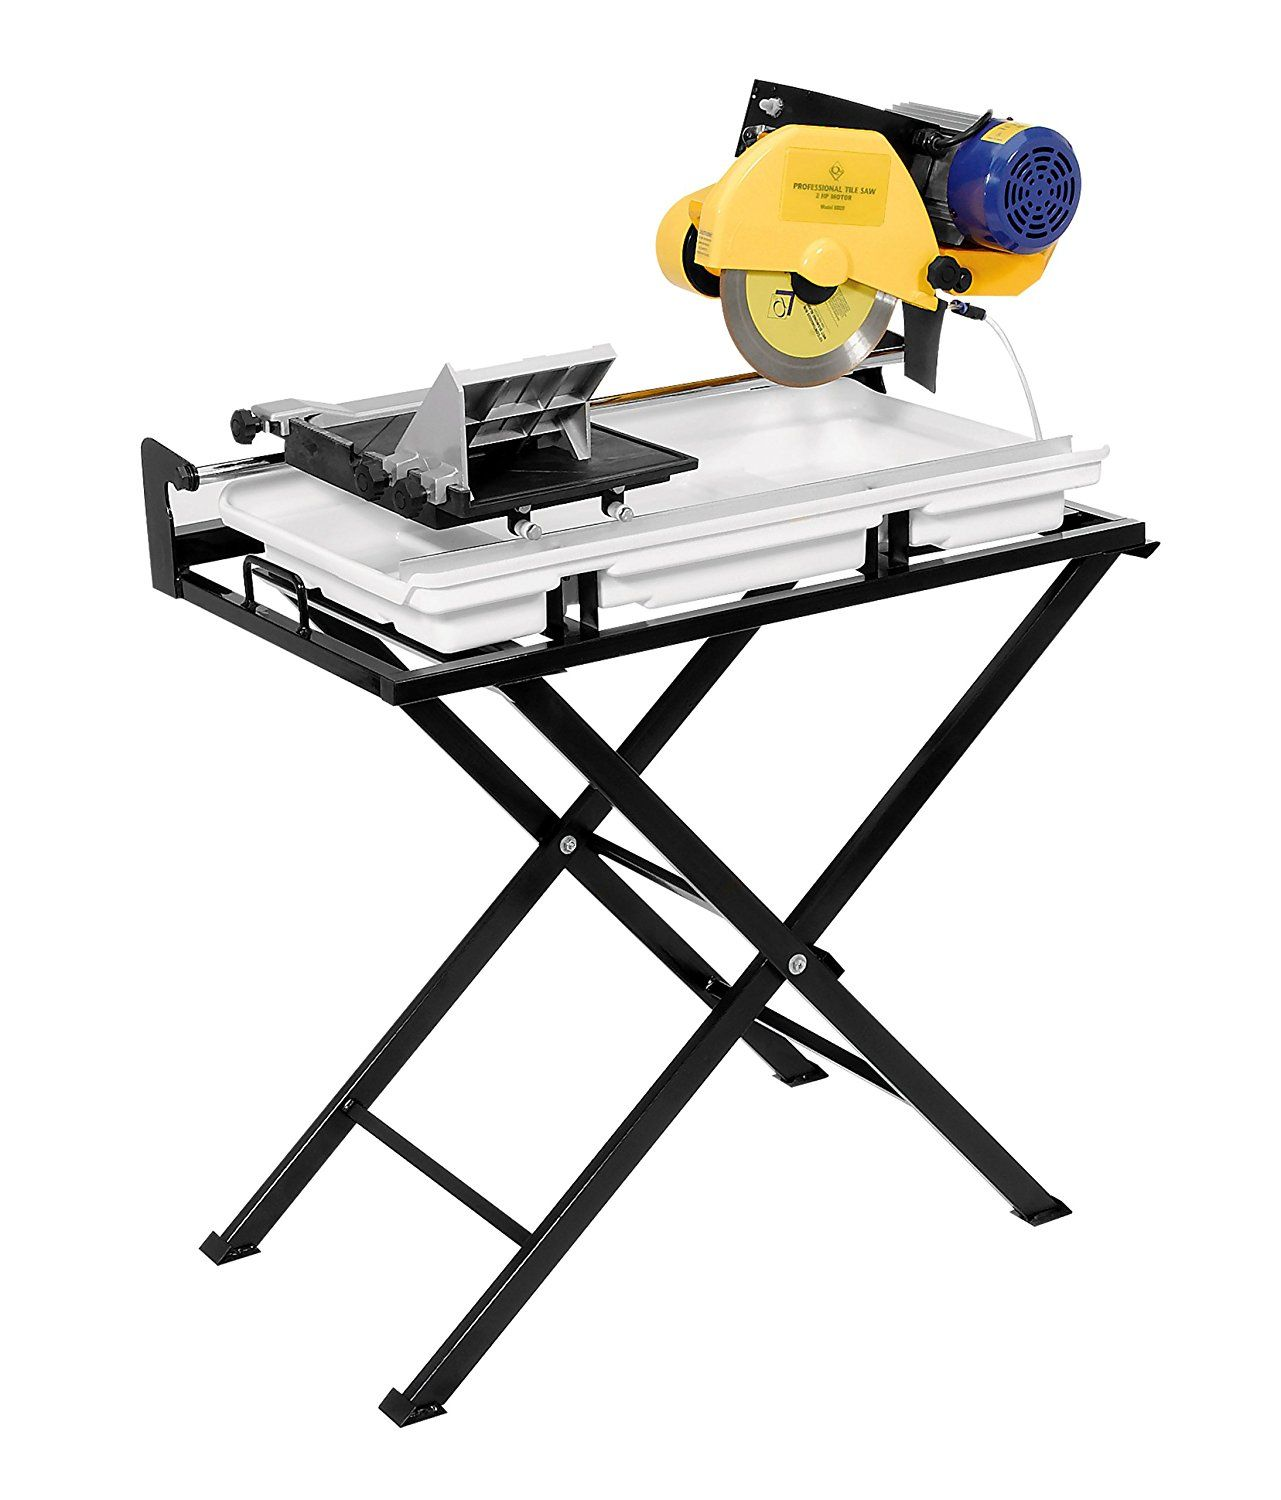 Awesome 10 Marvelous Tile Saw Reviews For The Professional Handyman In 2018 Tile Saw Tile Saws Steel Deck